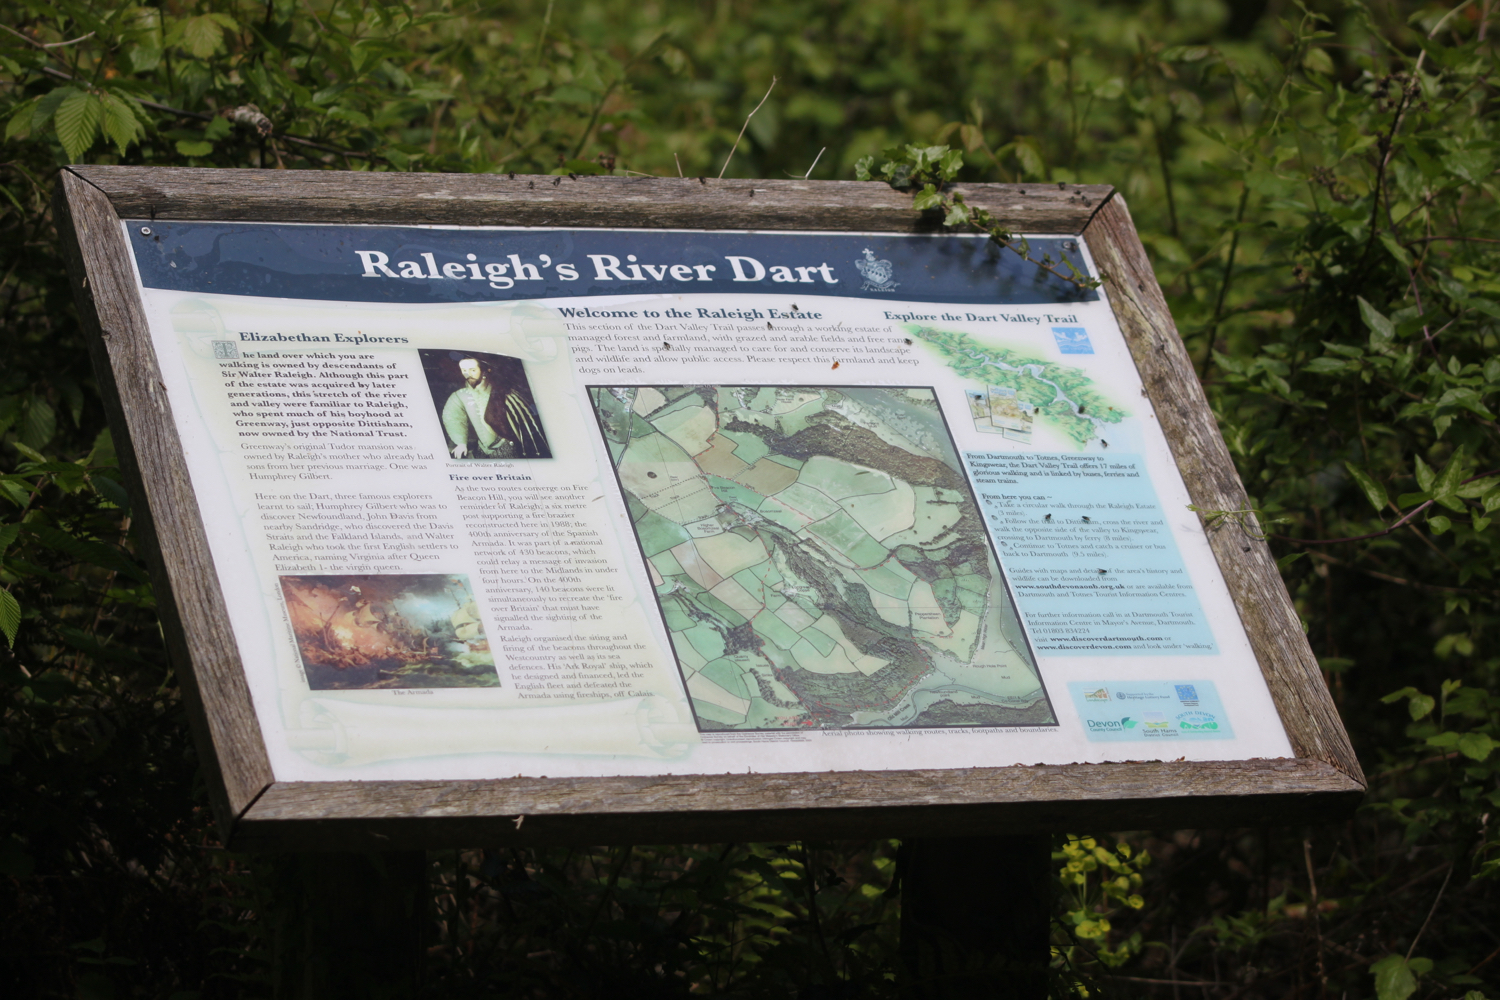 raleigh estate information board